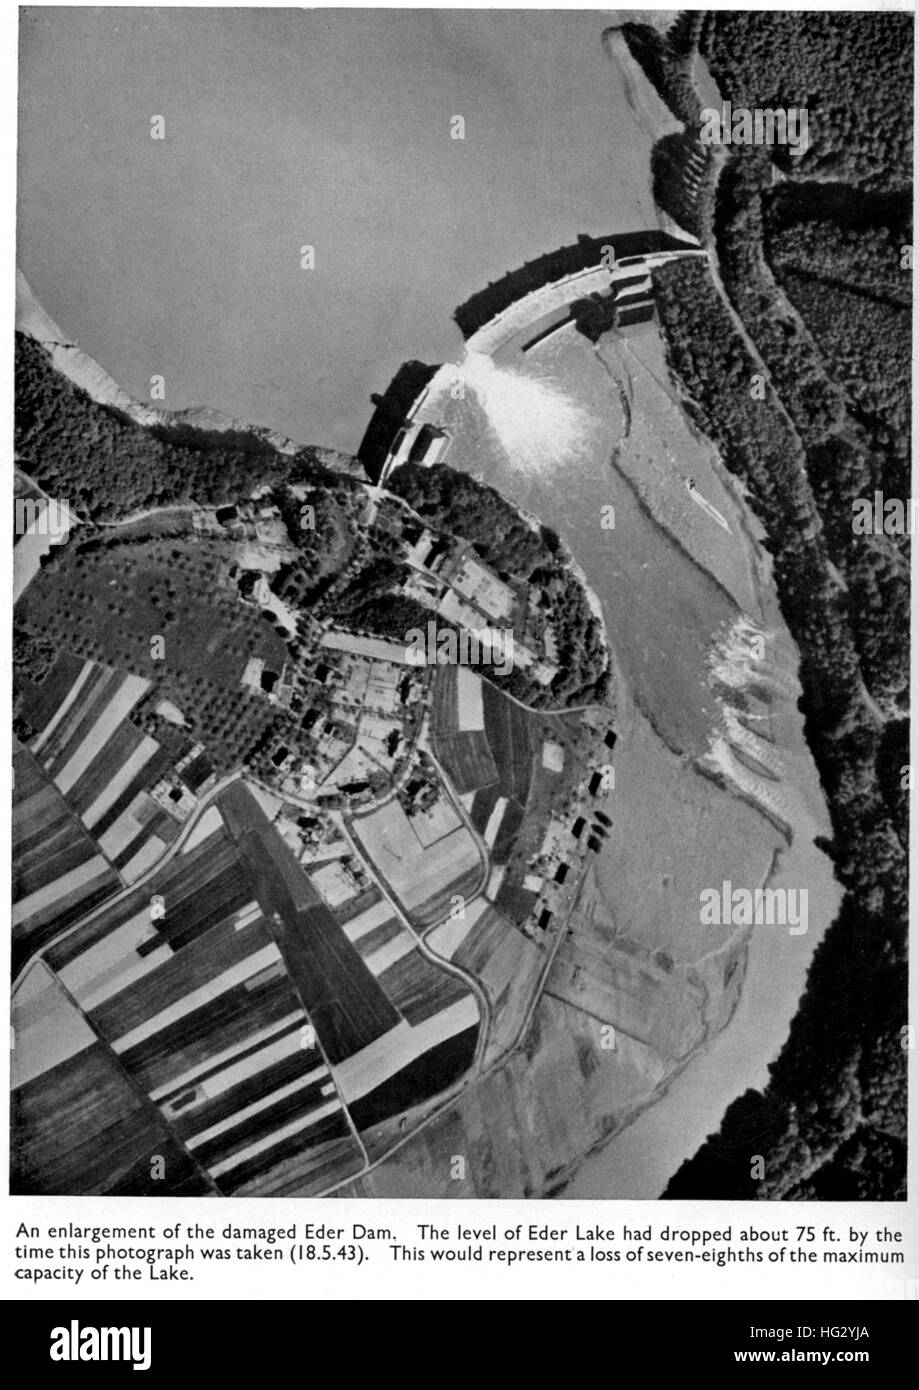 DAMS RAIDS - OPERATION CHASTISE Photo reconnaissance of the Eder Dam on 18 May 1943 following the raid by 617 Squadron - Stock Image